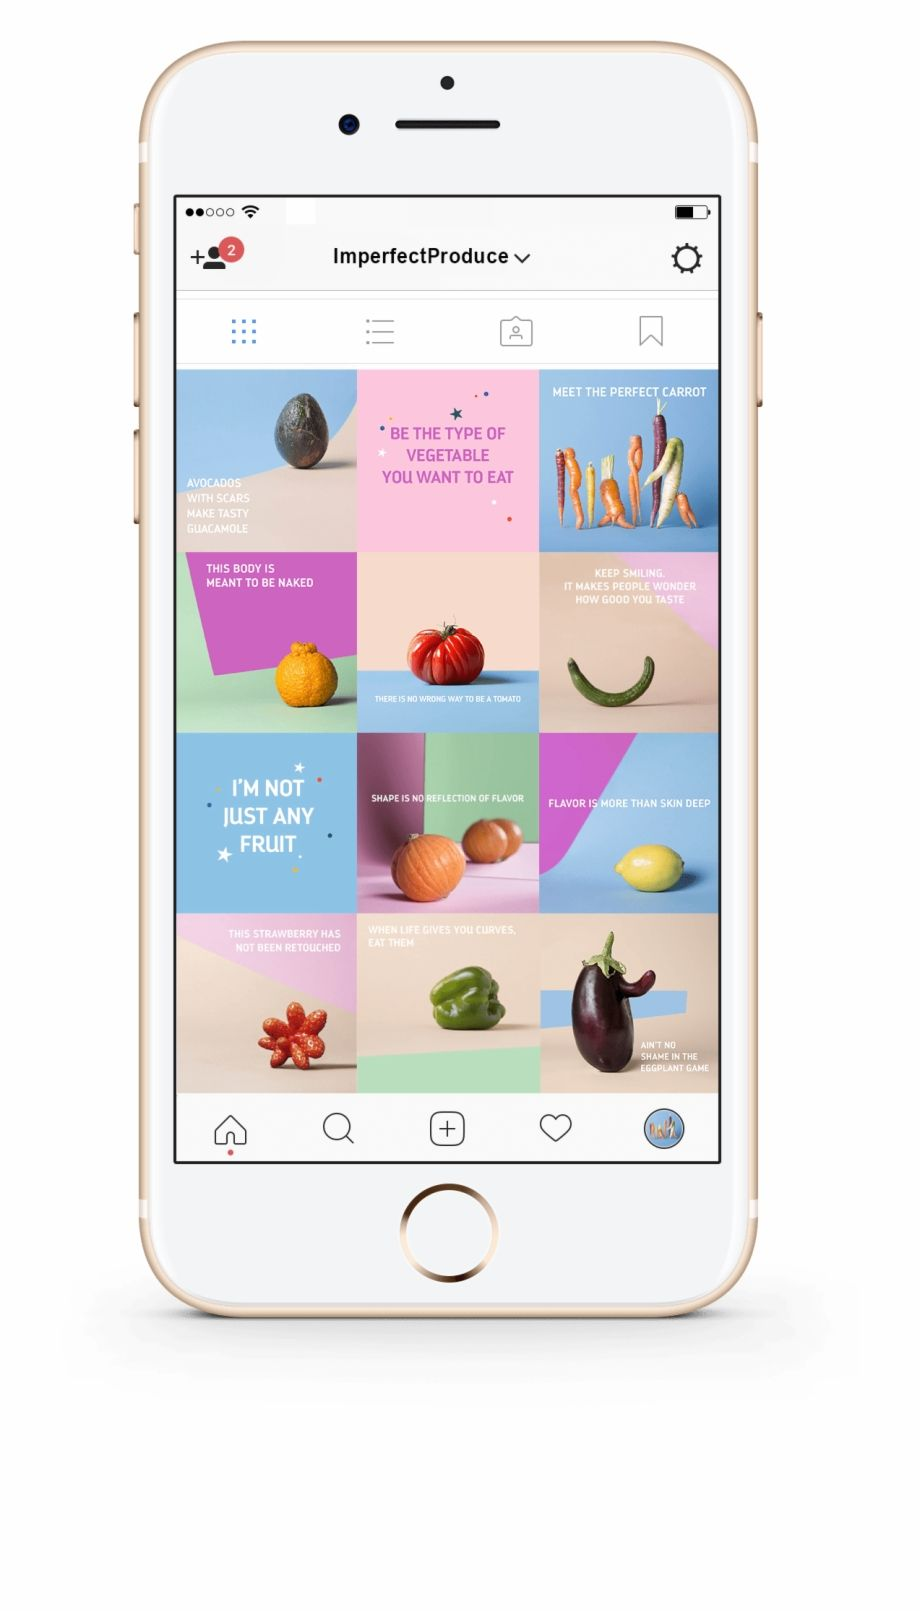 Instagram Feed On Phone Mockup 1 Fit Instagram Feed Mock Up Is A Free Transparent Png Image Search And Find More On Phone Mockup Instagram Feed Instagram